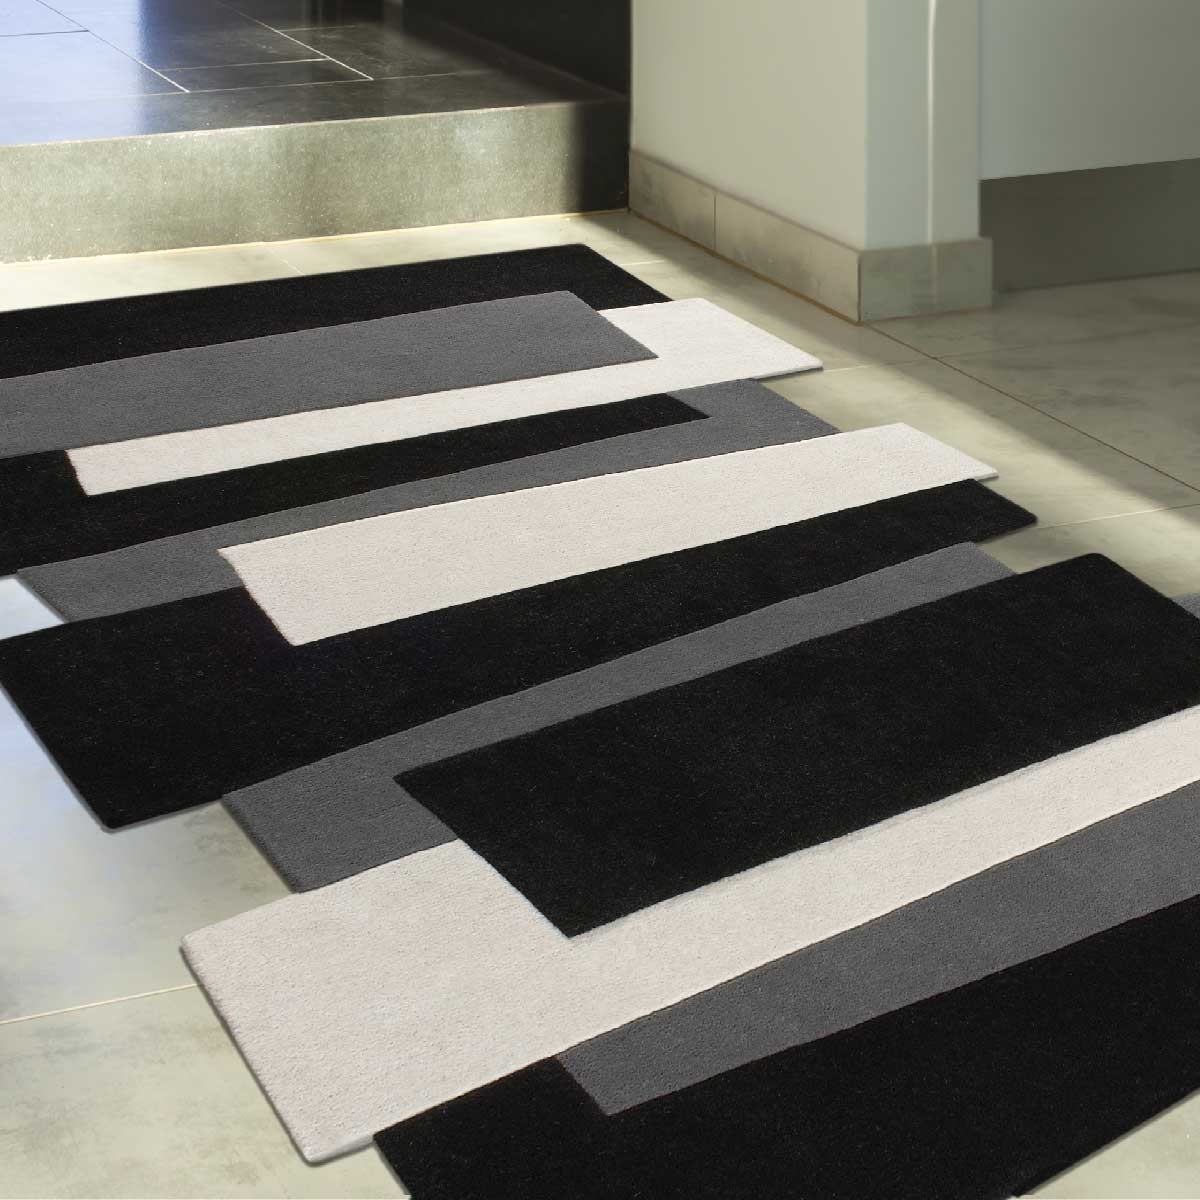 tapis noir blanc gris id es de d coration int rieure. Black Bedroom Furniture Sets. Home Design Ideas